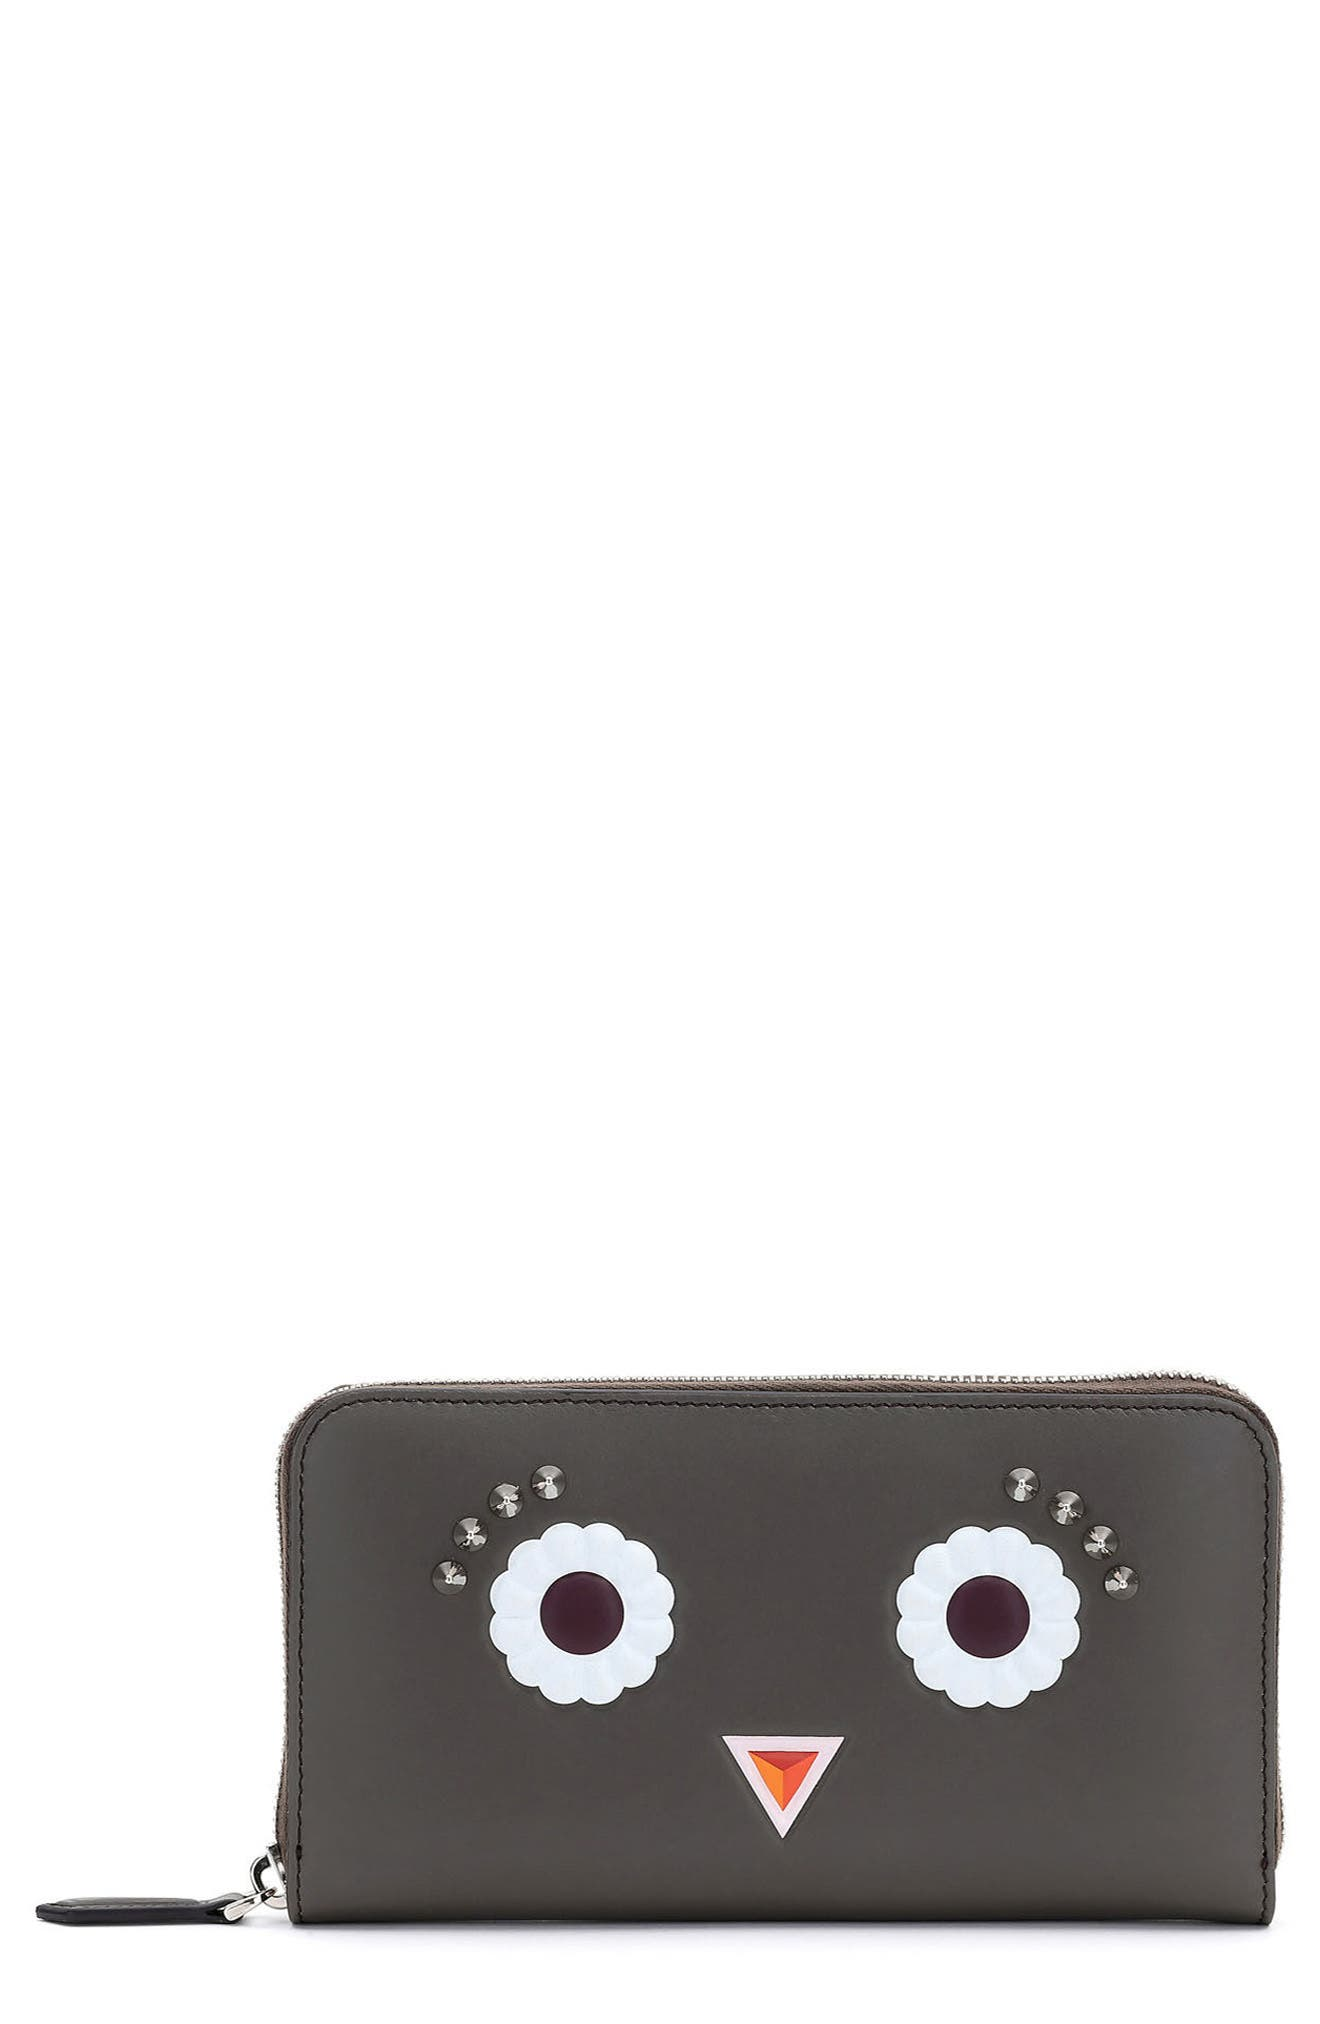 Faces Leather Zip Around Wallet,                             Main thumbnail 1, color,                             Coal